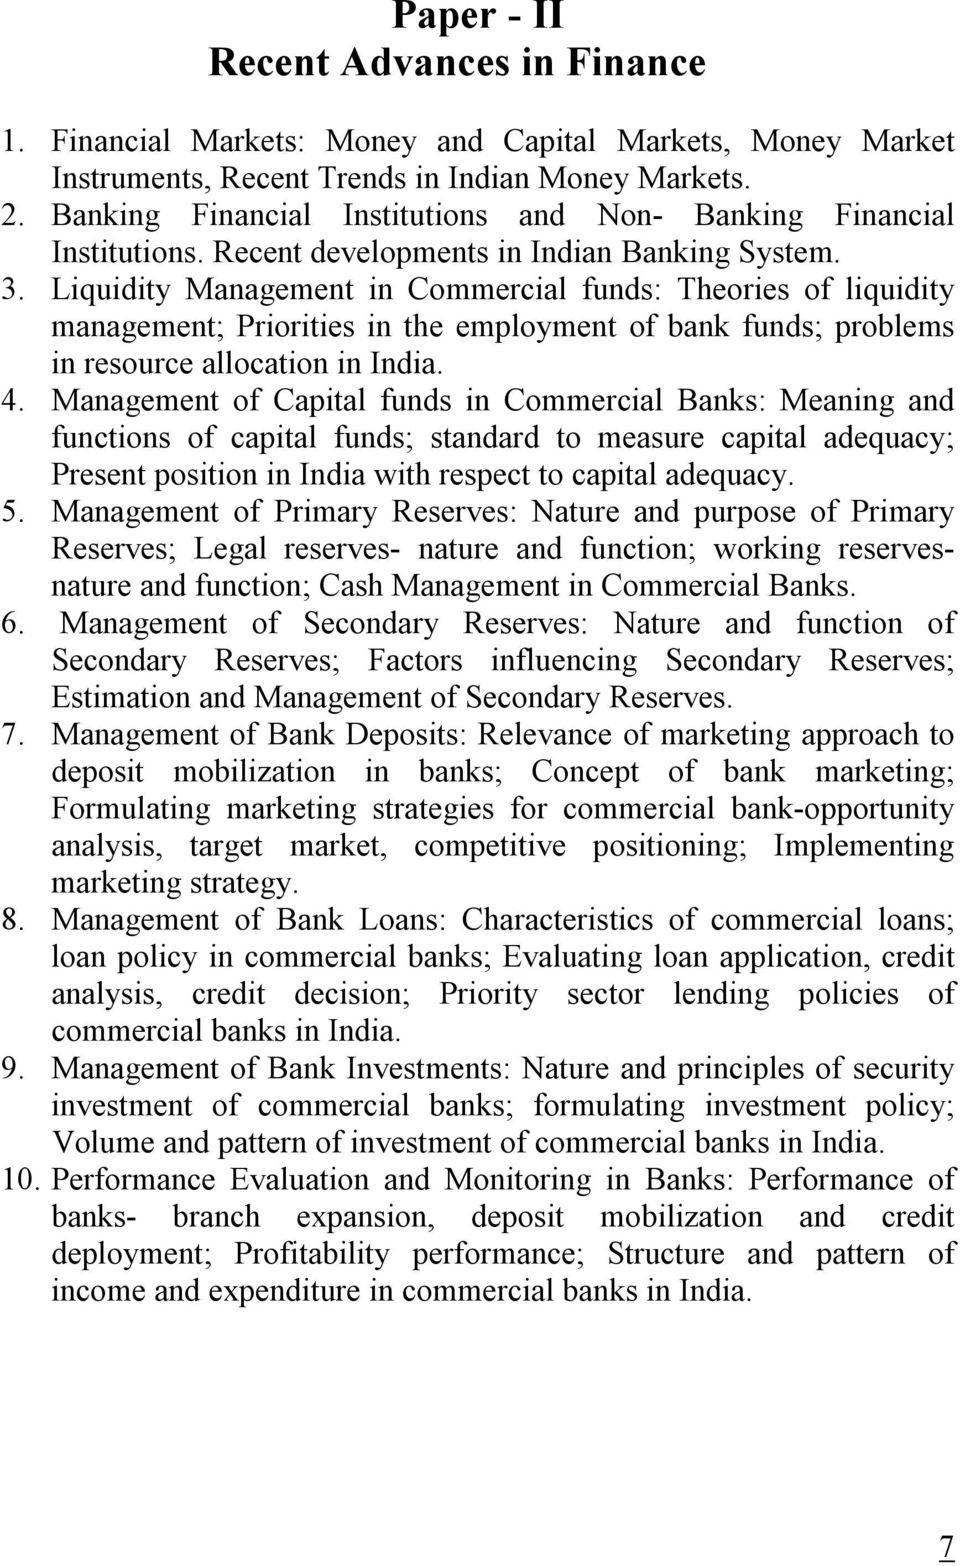 Liquidity Management in Commercial funds: Theories of liquidity management; Priorities in the employment of bank funds; problems in resource allocation in India. 4.